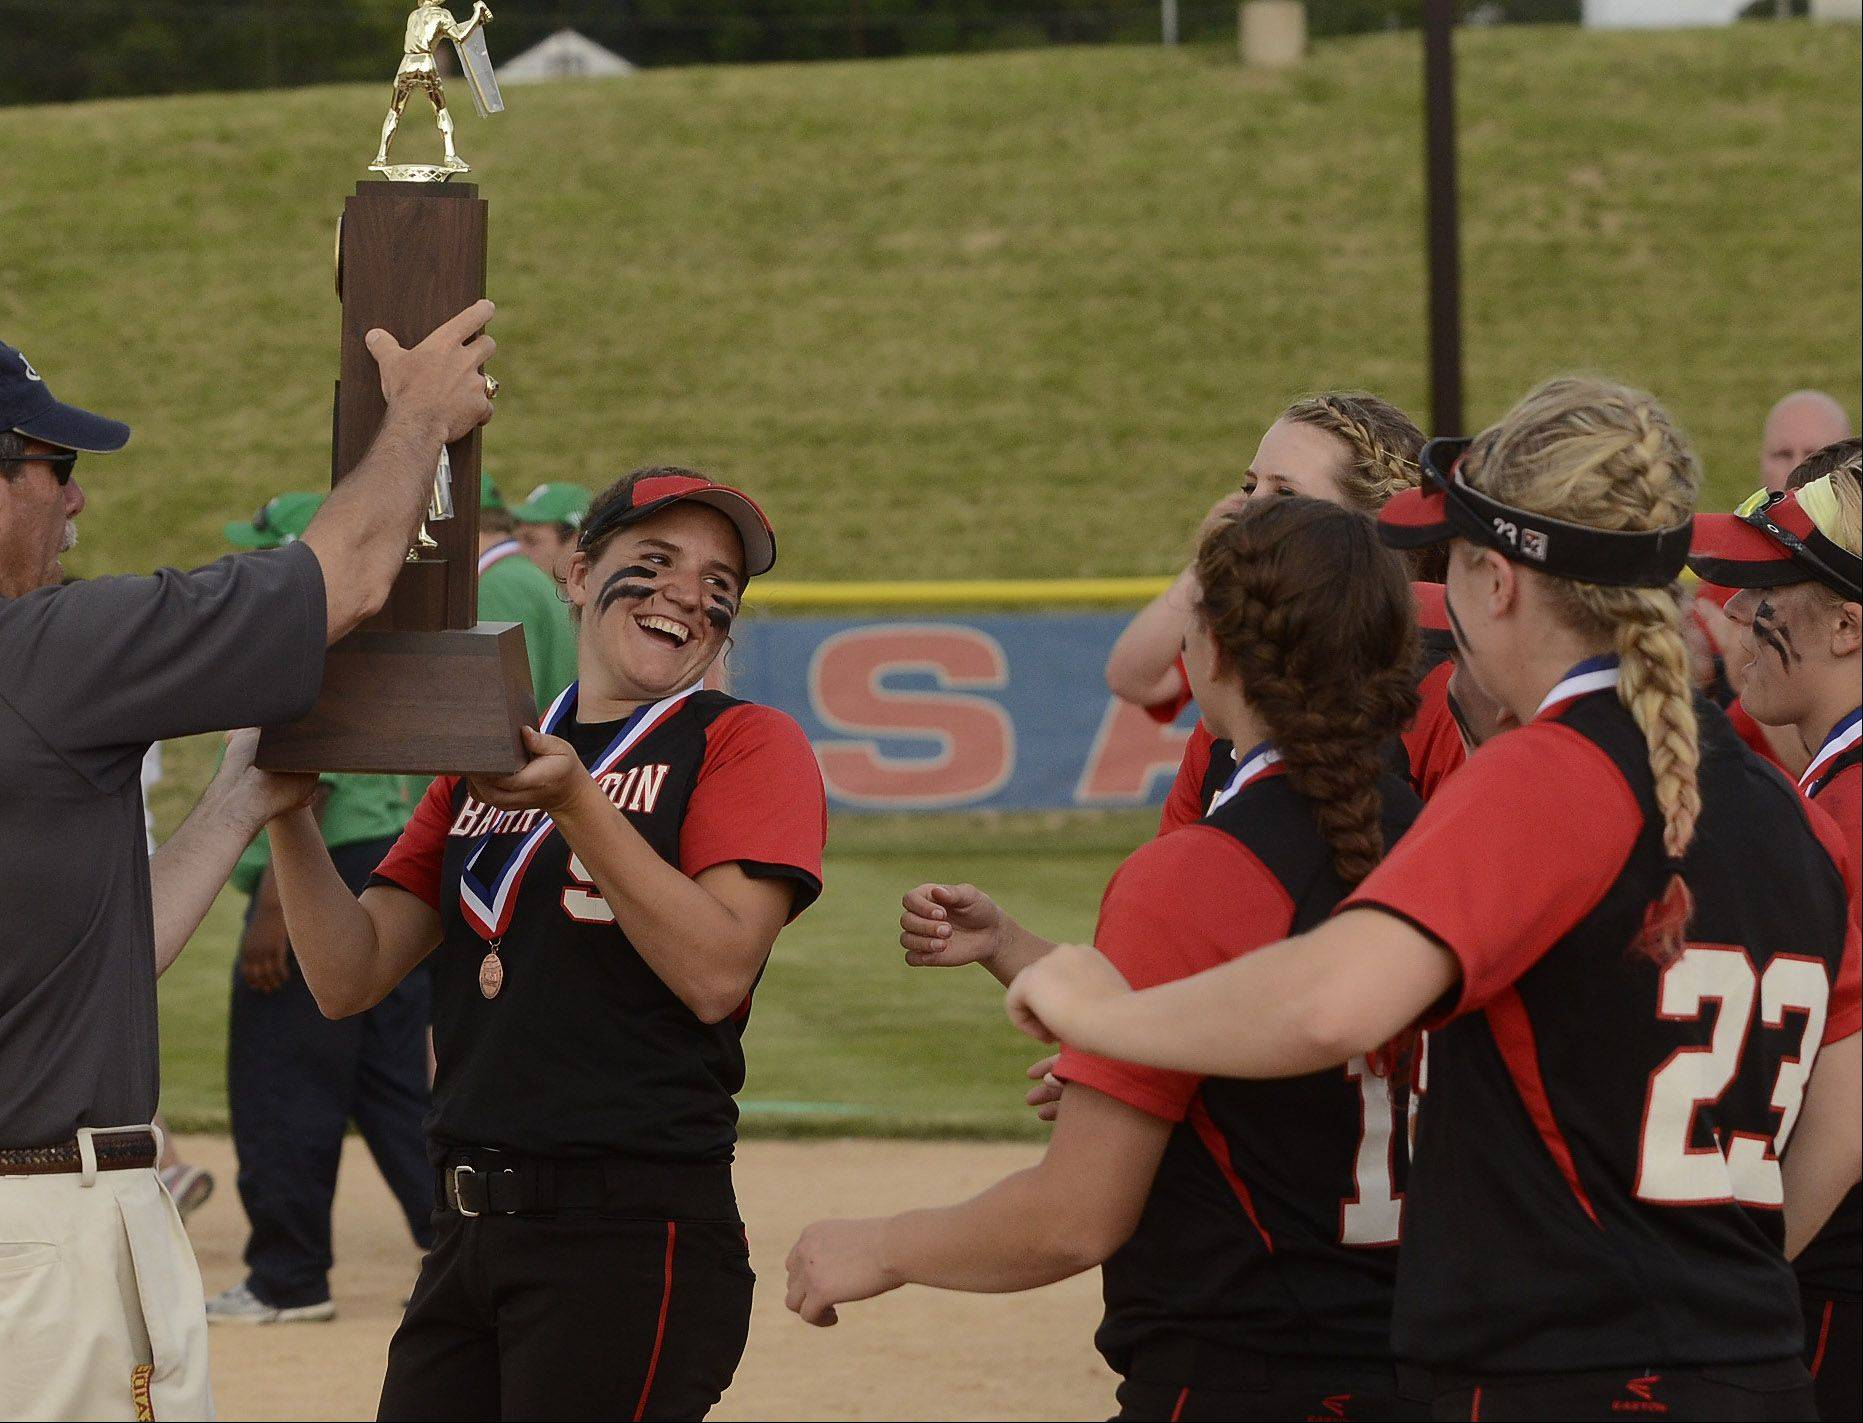 Barrington's Maggie O'Hara hoists the Class 4A third place trophy after Barrington defeats York 5-1.